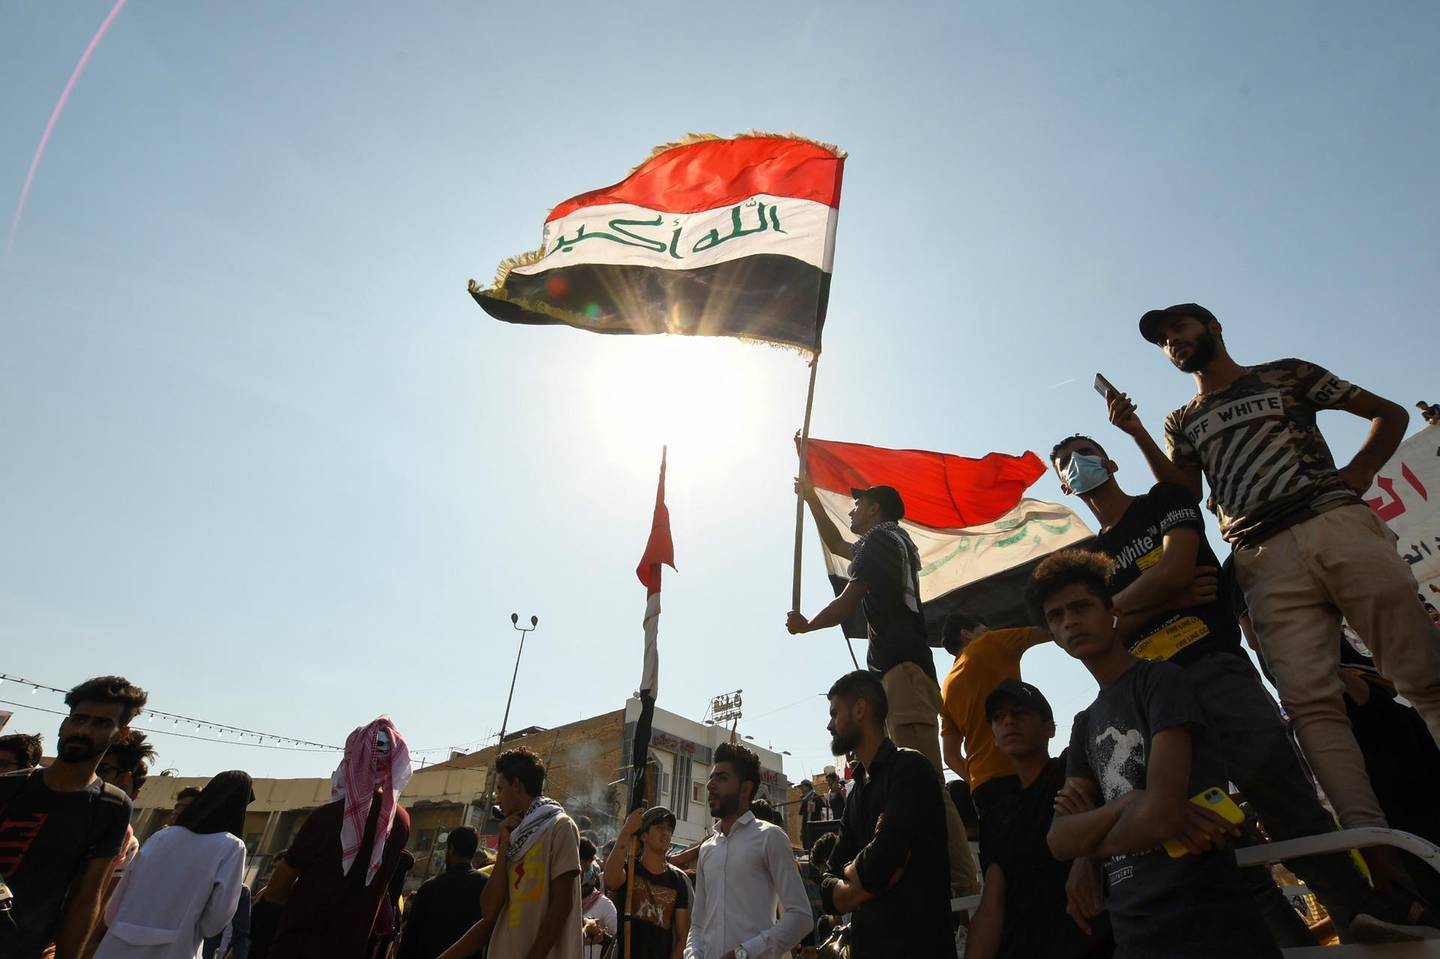 Iraqi demonstrators chant slogans during a gathering in Haboubi Square in the southern city of Nasiriyah on October 28, 2020, to demand a total overhaul of a political system.  / AFP / Assaad AL-NIYAZI